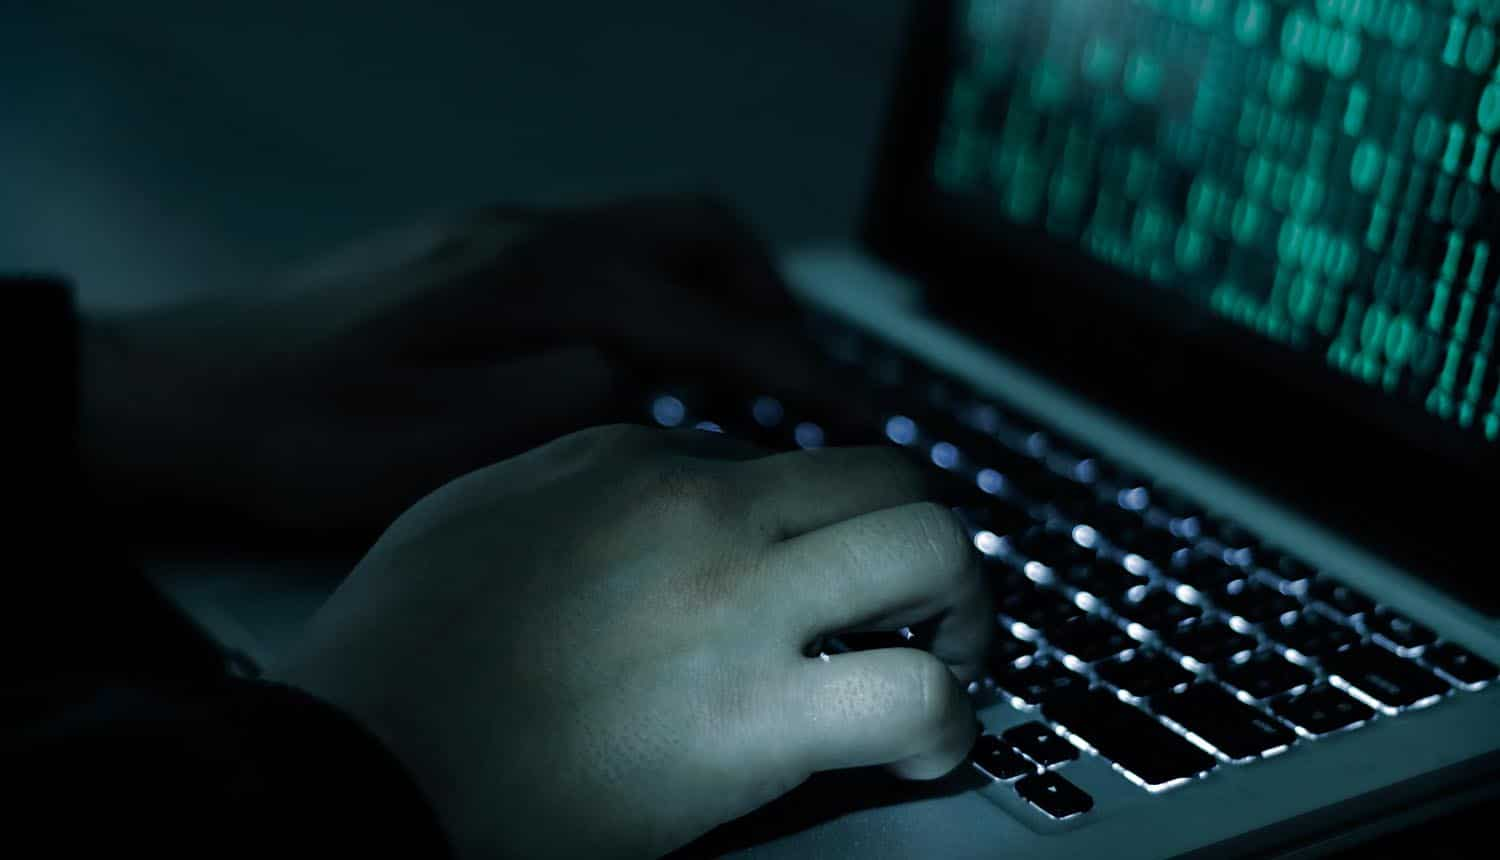 Hacker hands with binary codes on monitor showing the dark web